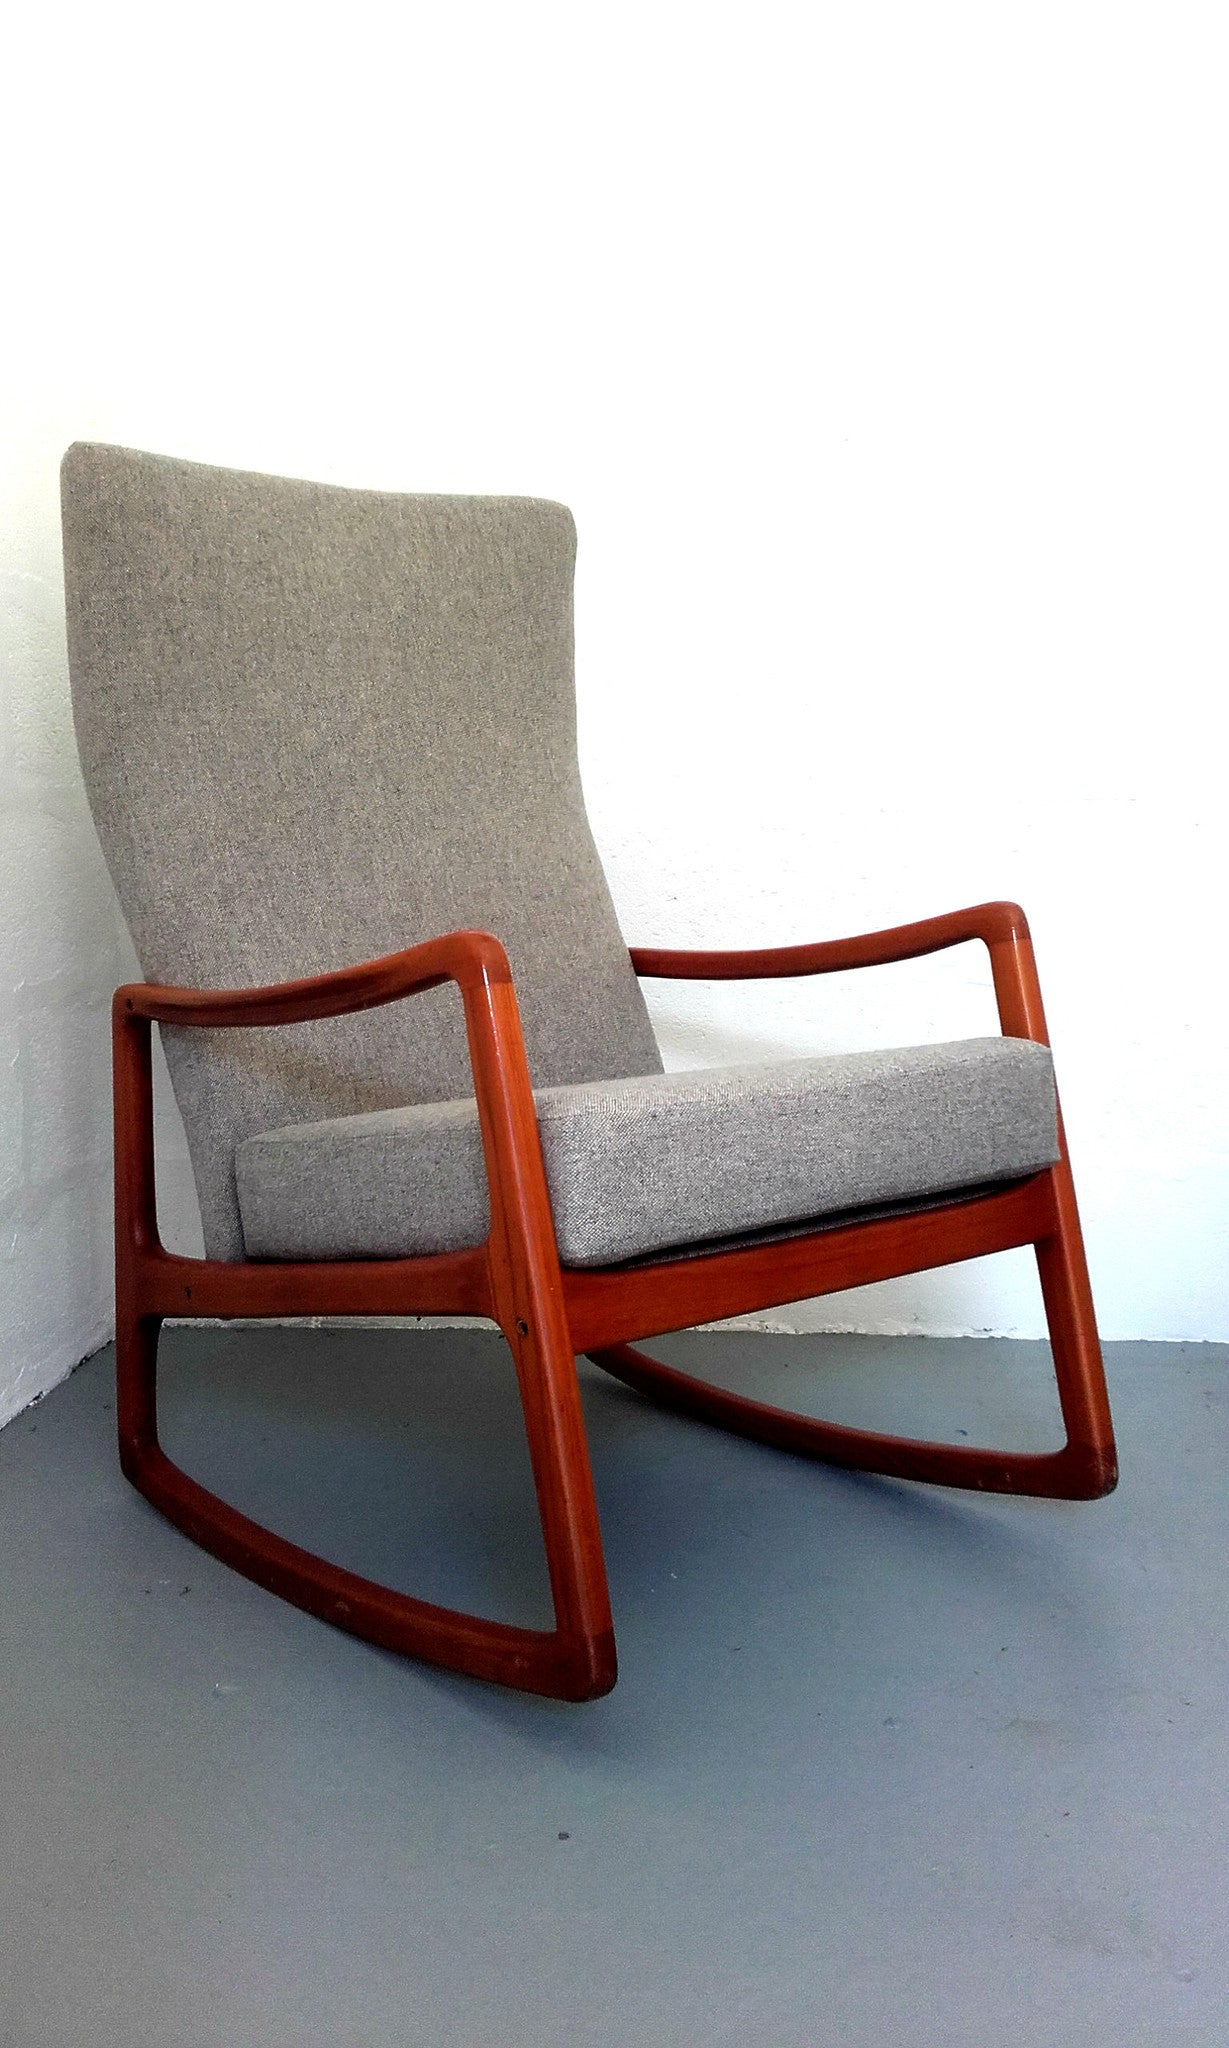 z fashionable century chair rocking com modern mrsapo mid